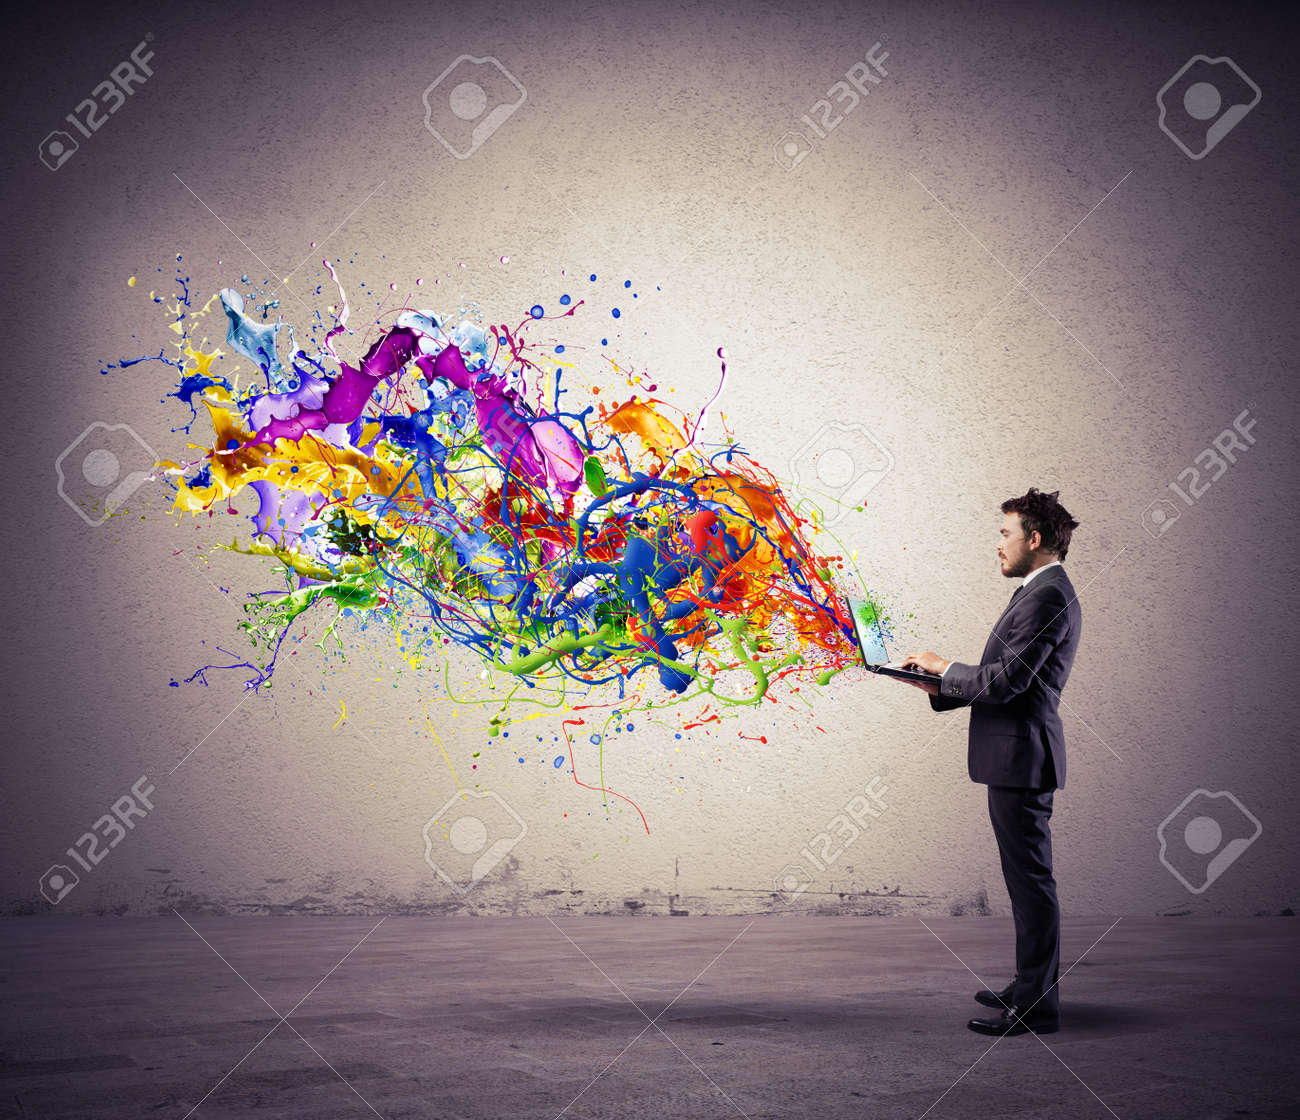 Concept of creative technology with colorful effect Stock Photo - 29196117